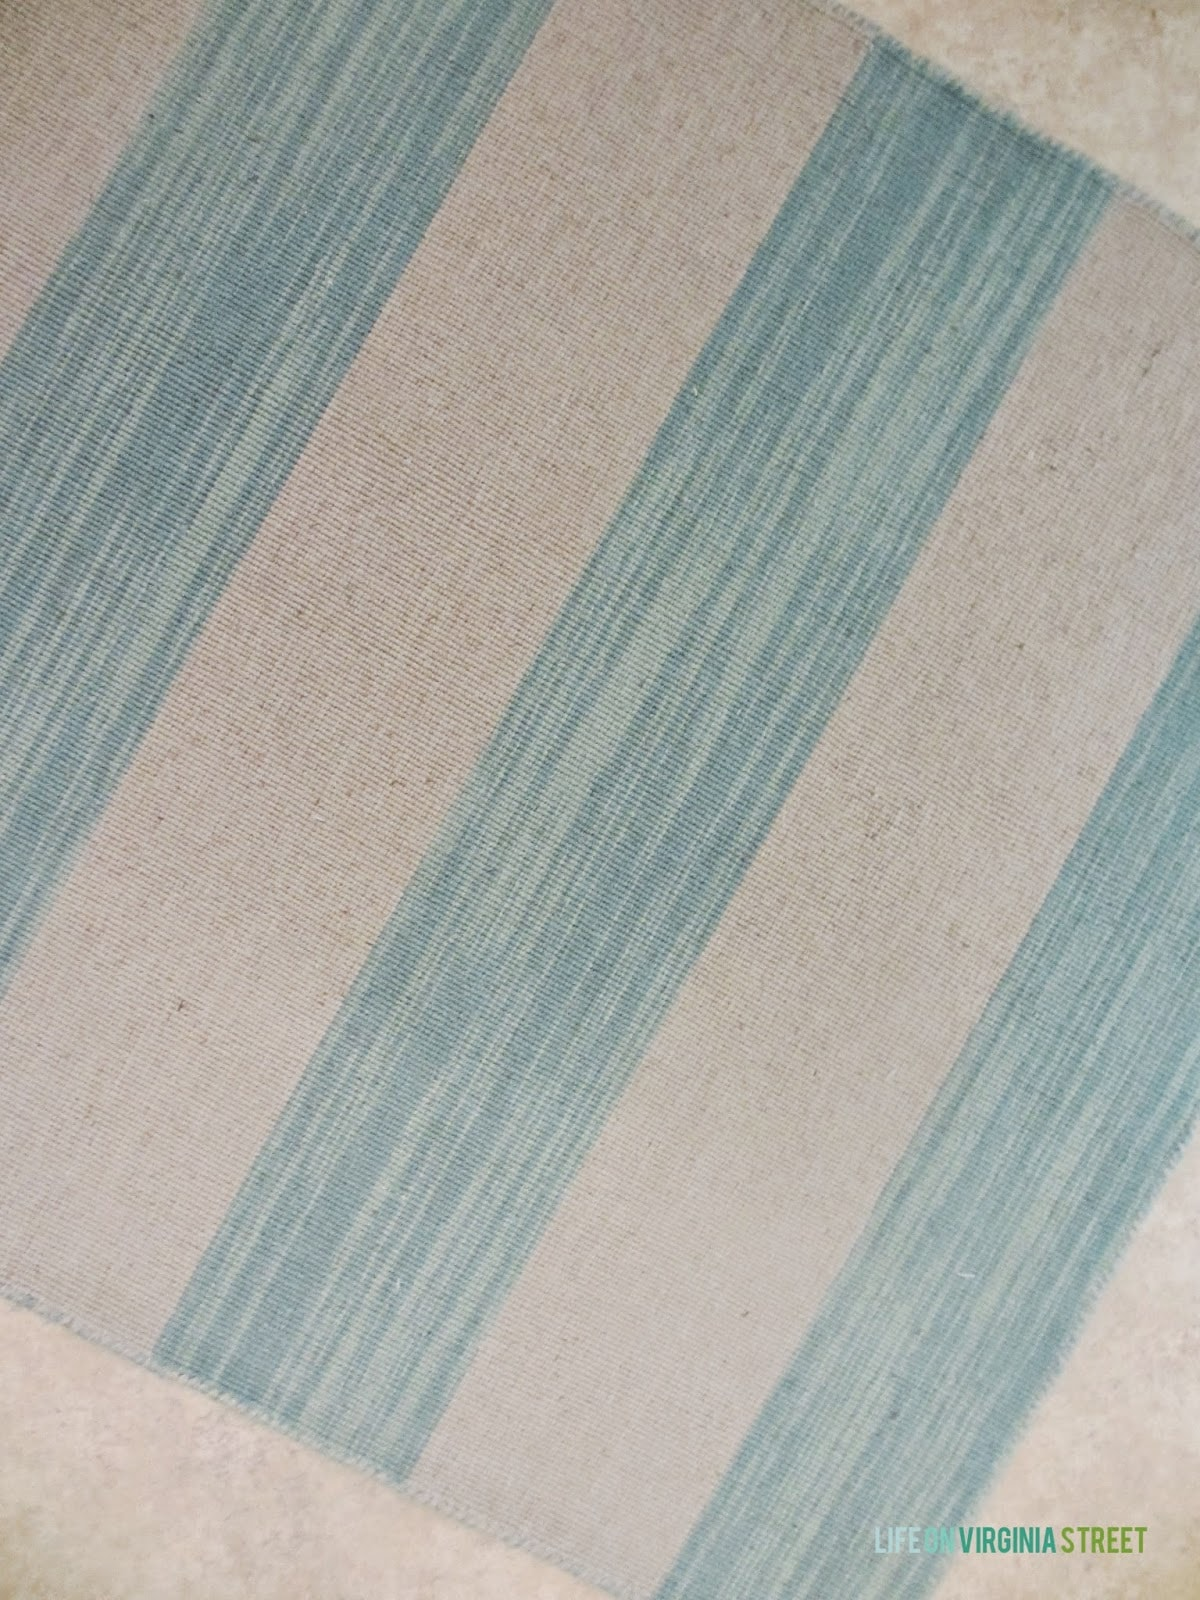 Striped Aqua And Beige Rug